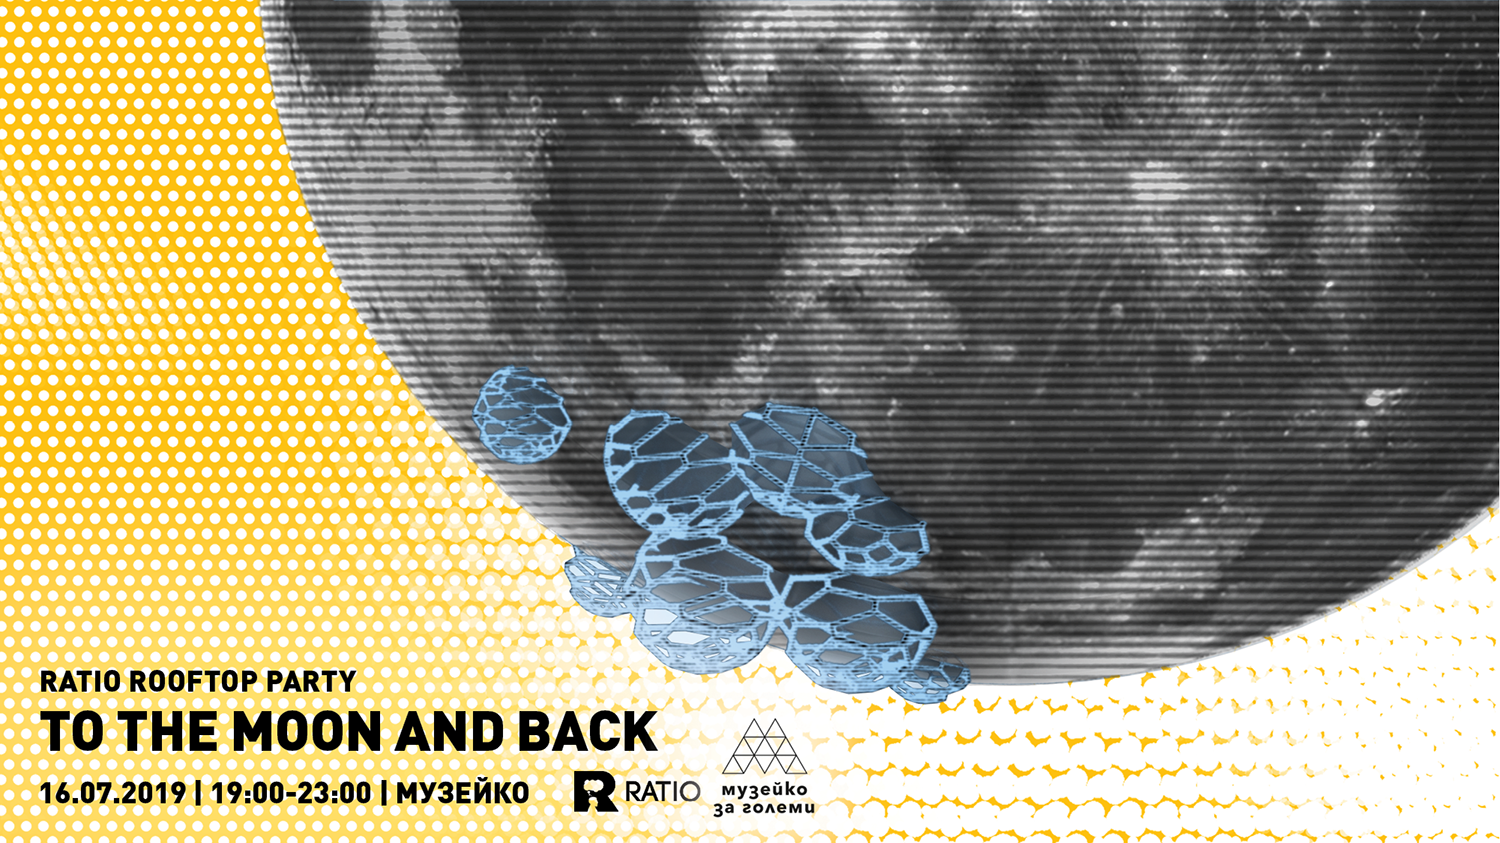 To the Moon and Back – Ratio Rooftop Party